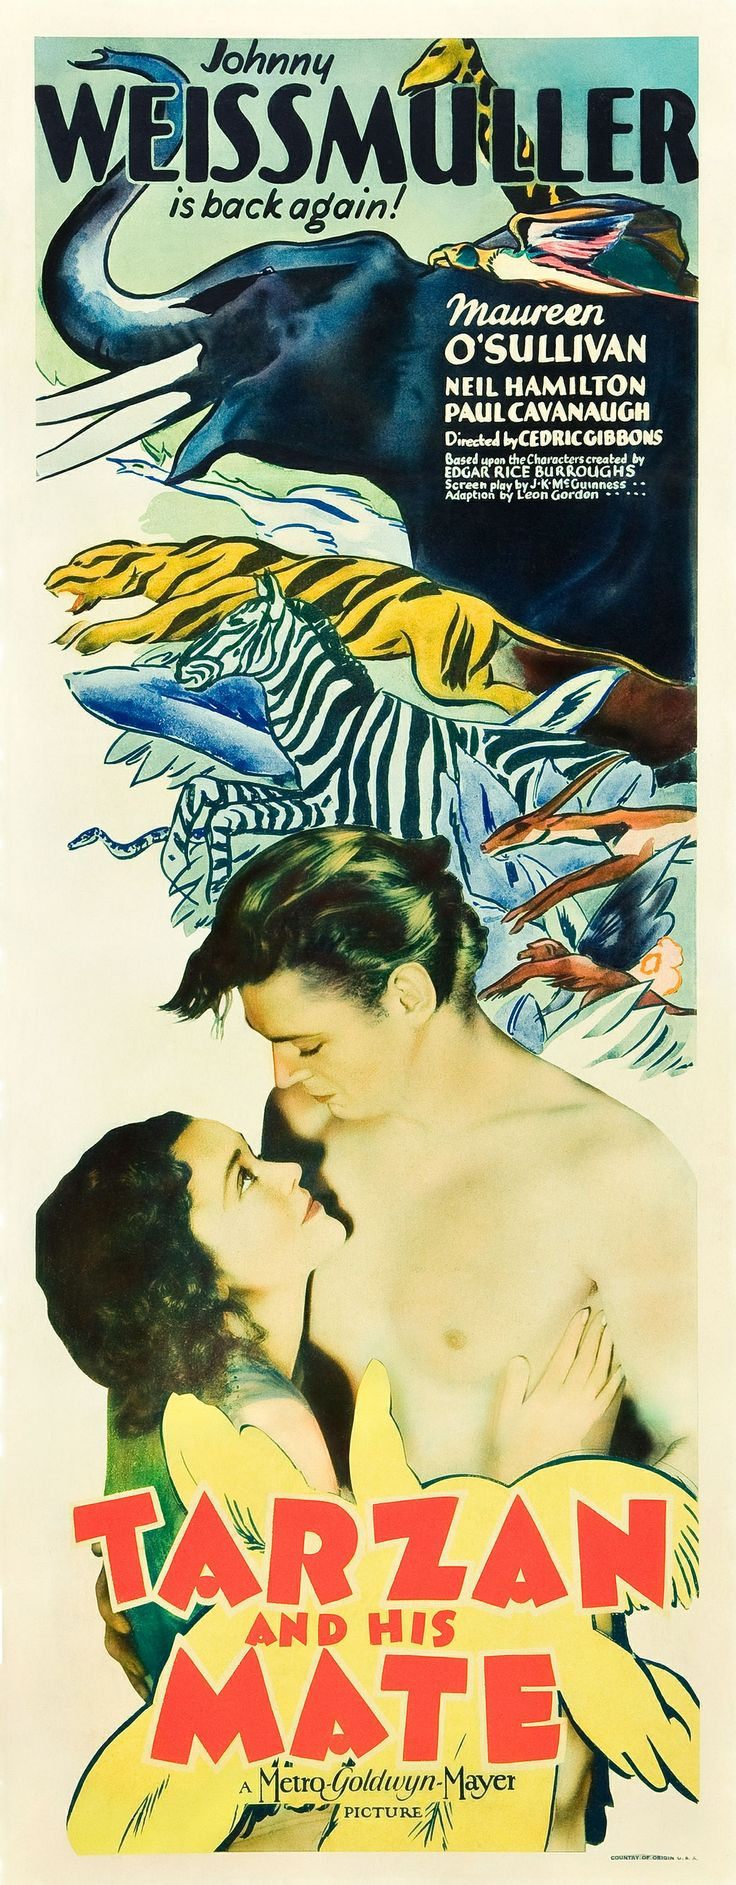 TARZAN AND HIS MATE (1934) - Johnny Weismuller - Maureen O'Sullivan - MGM - Insert Movie Poster.